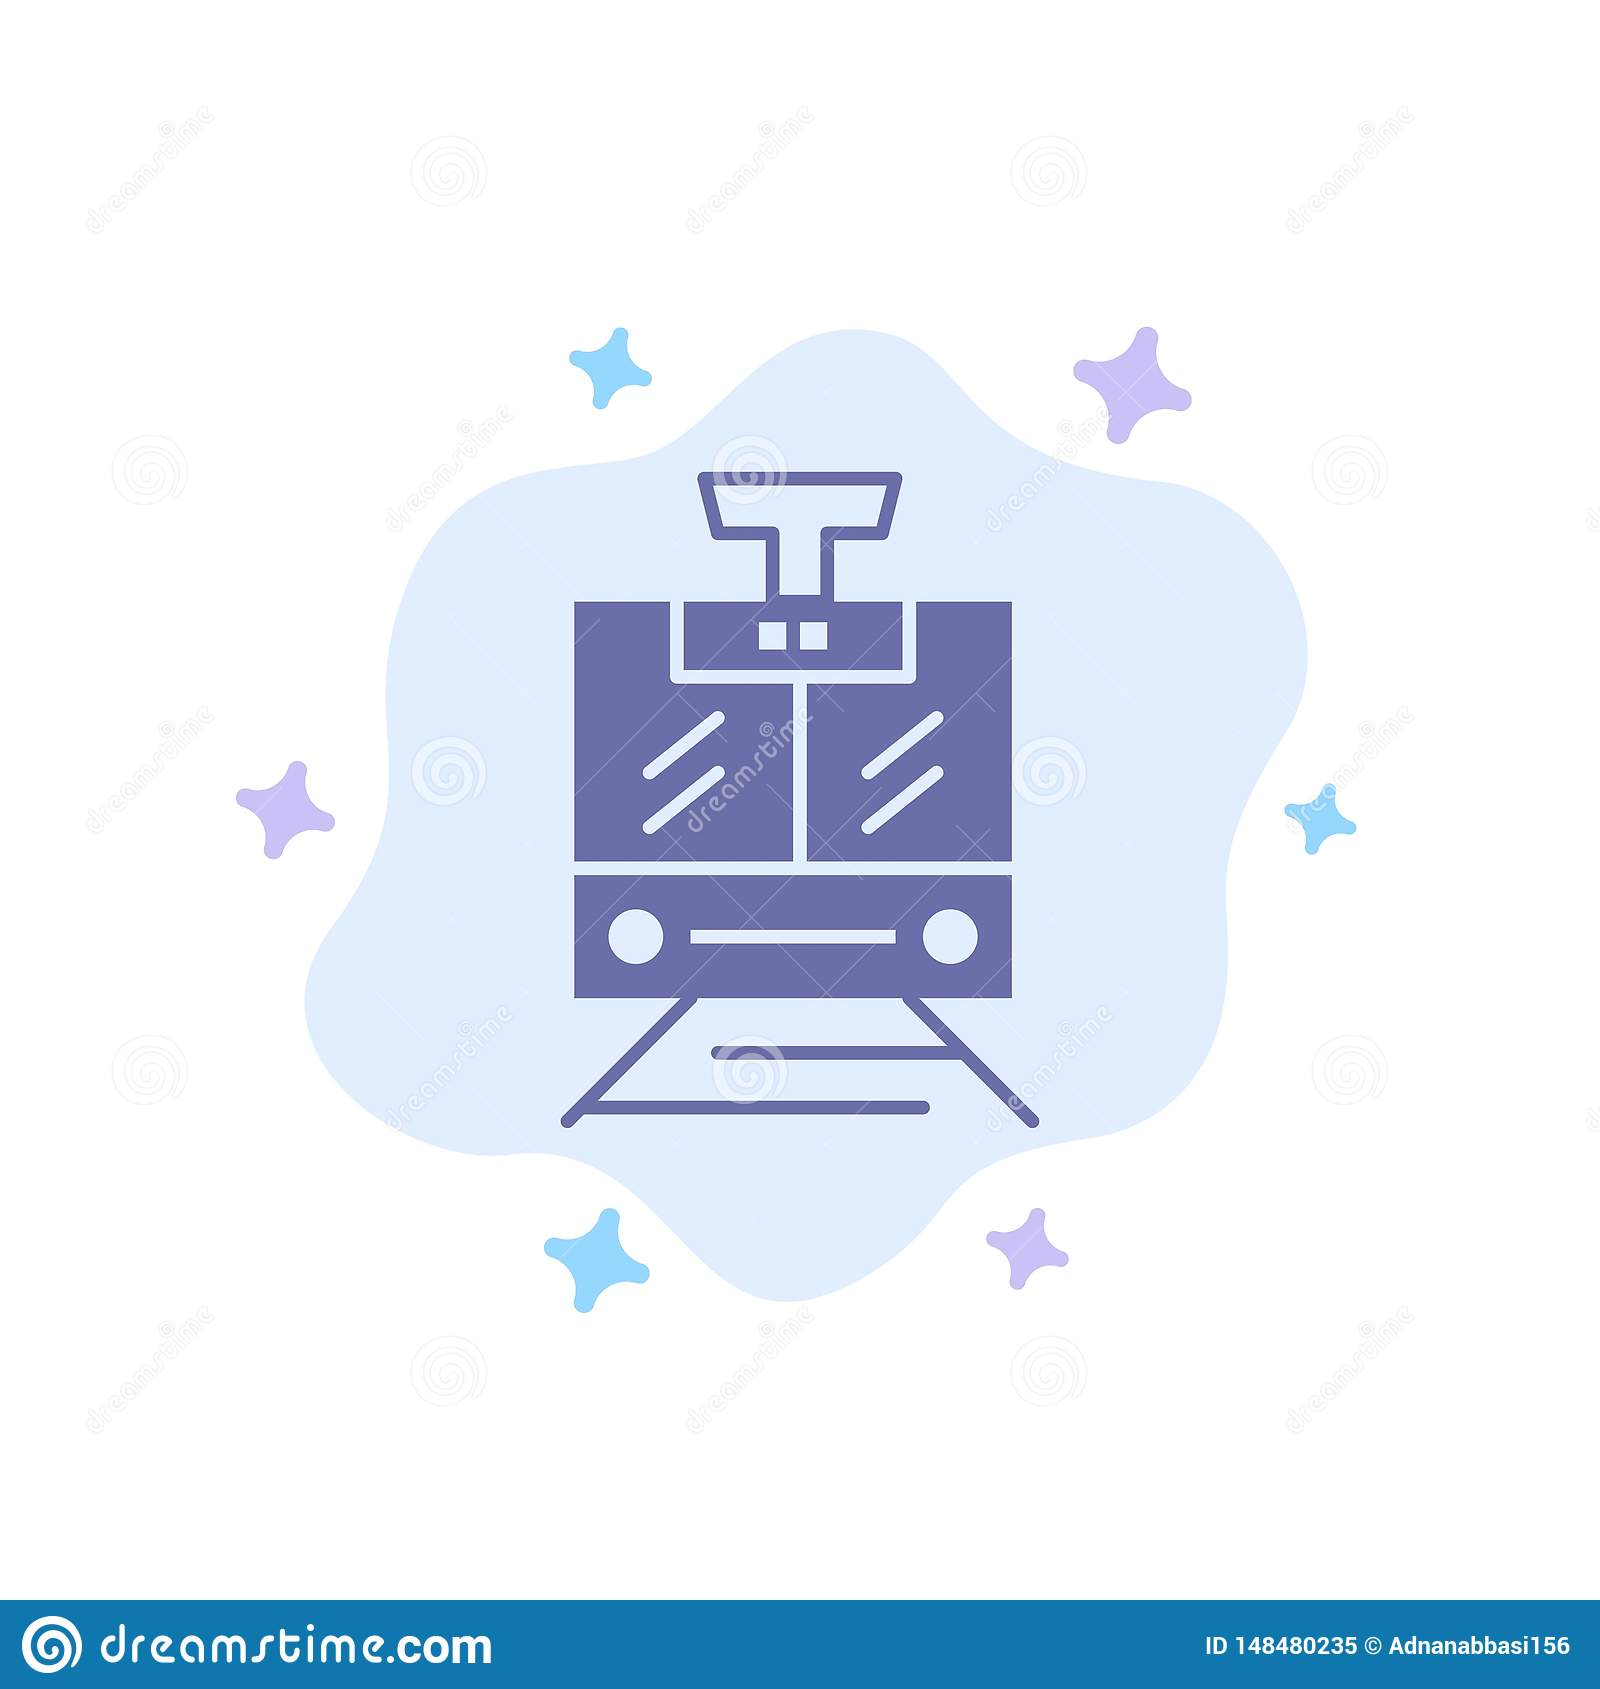 Train, Public, Service, Vehicle Blue Icon on Abstract Cloud Background